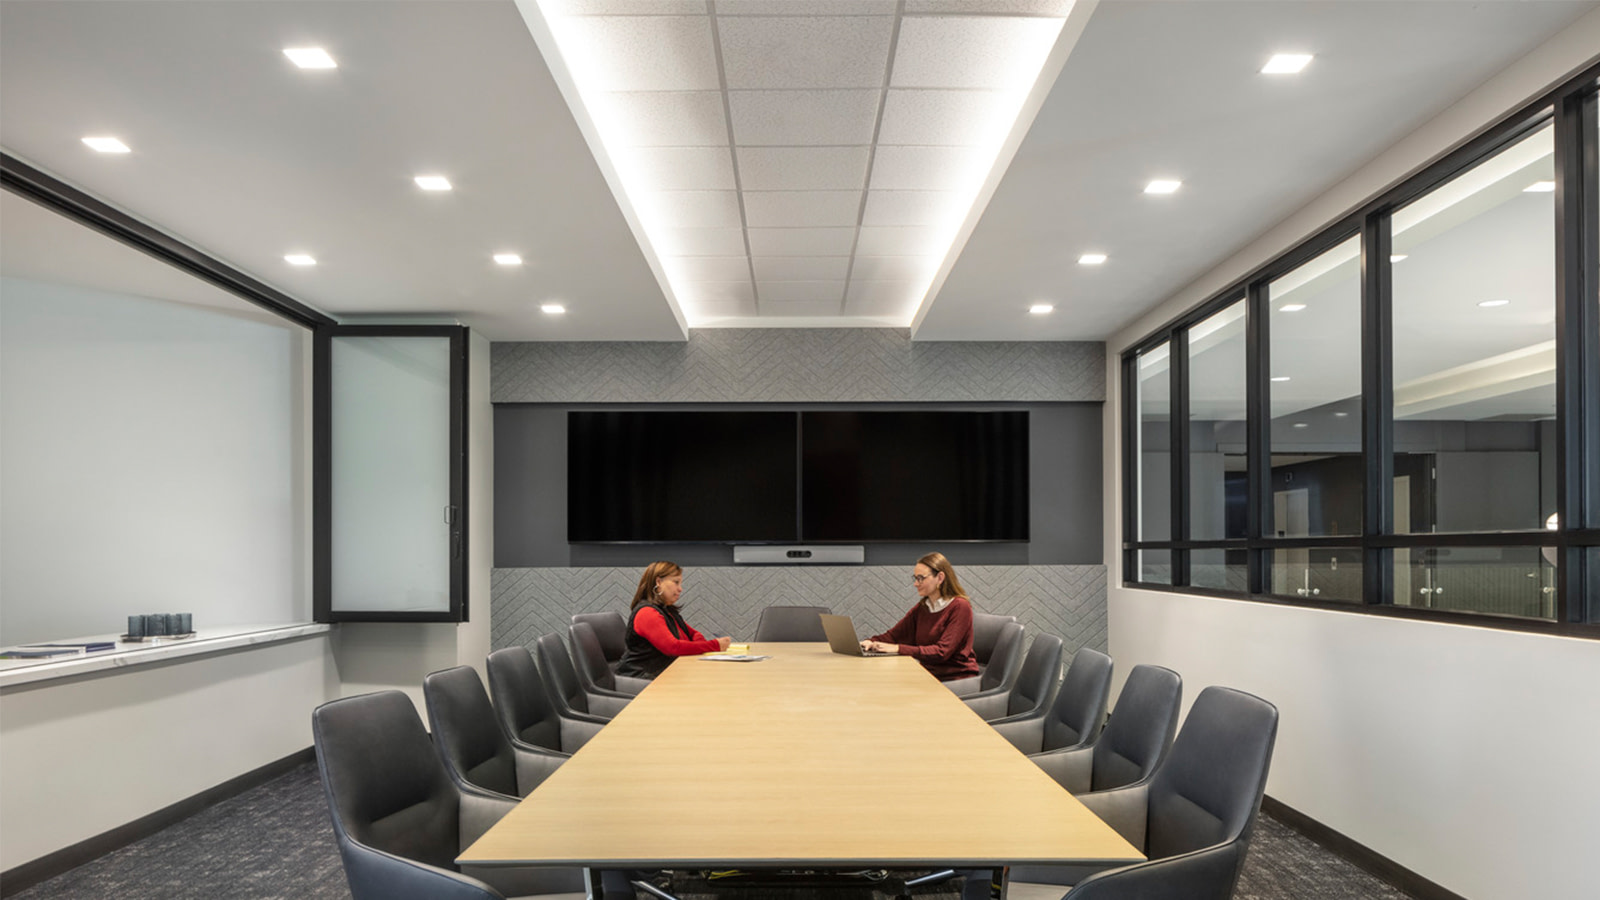 The conference room of Lockton in Denver